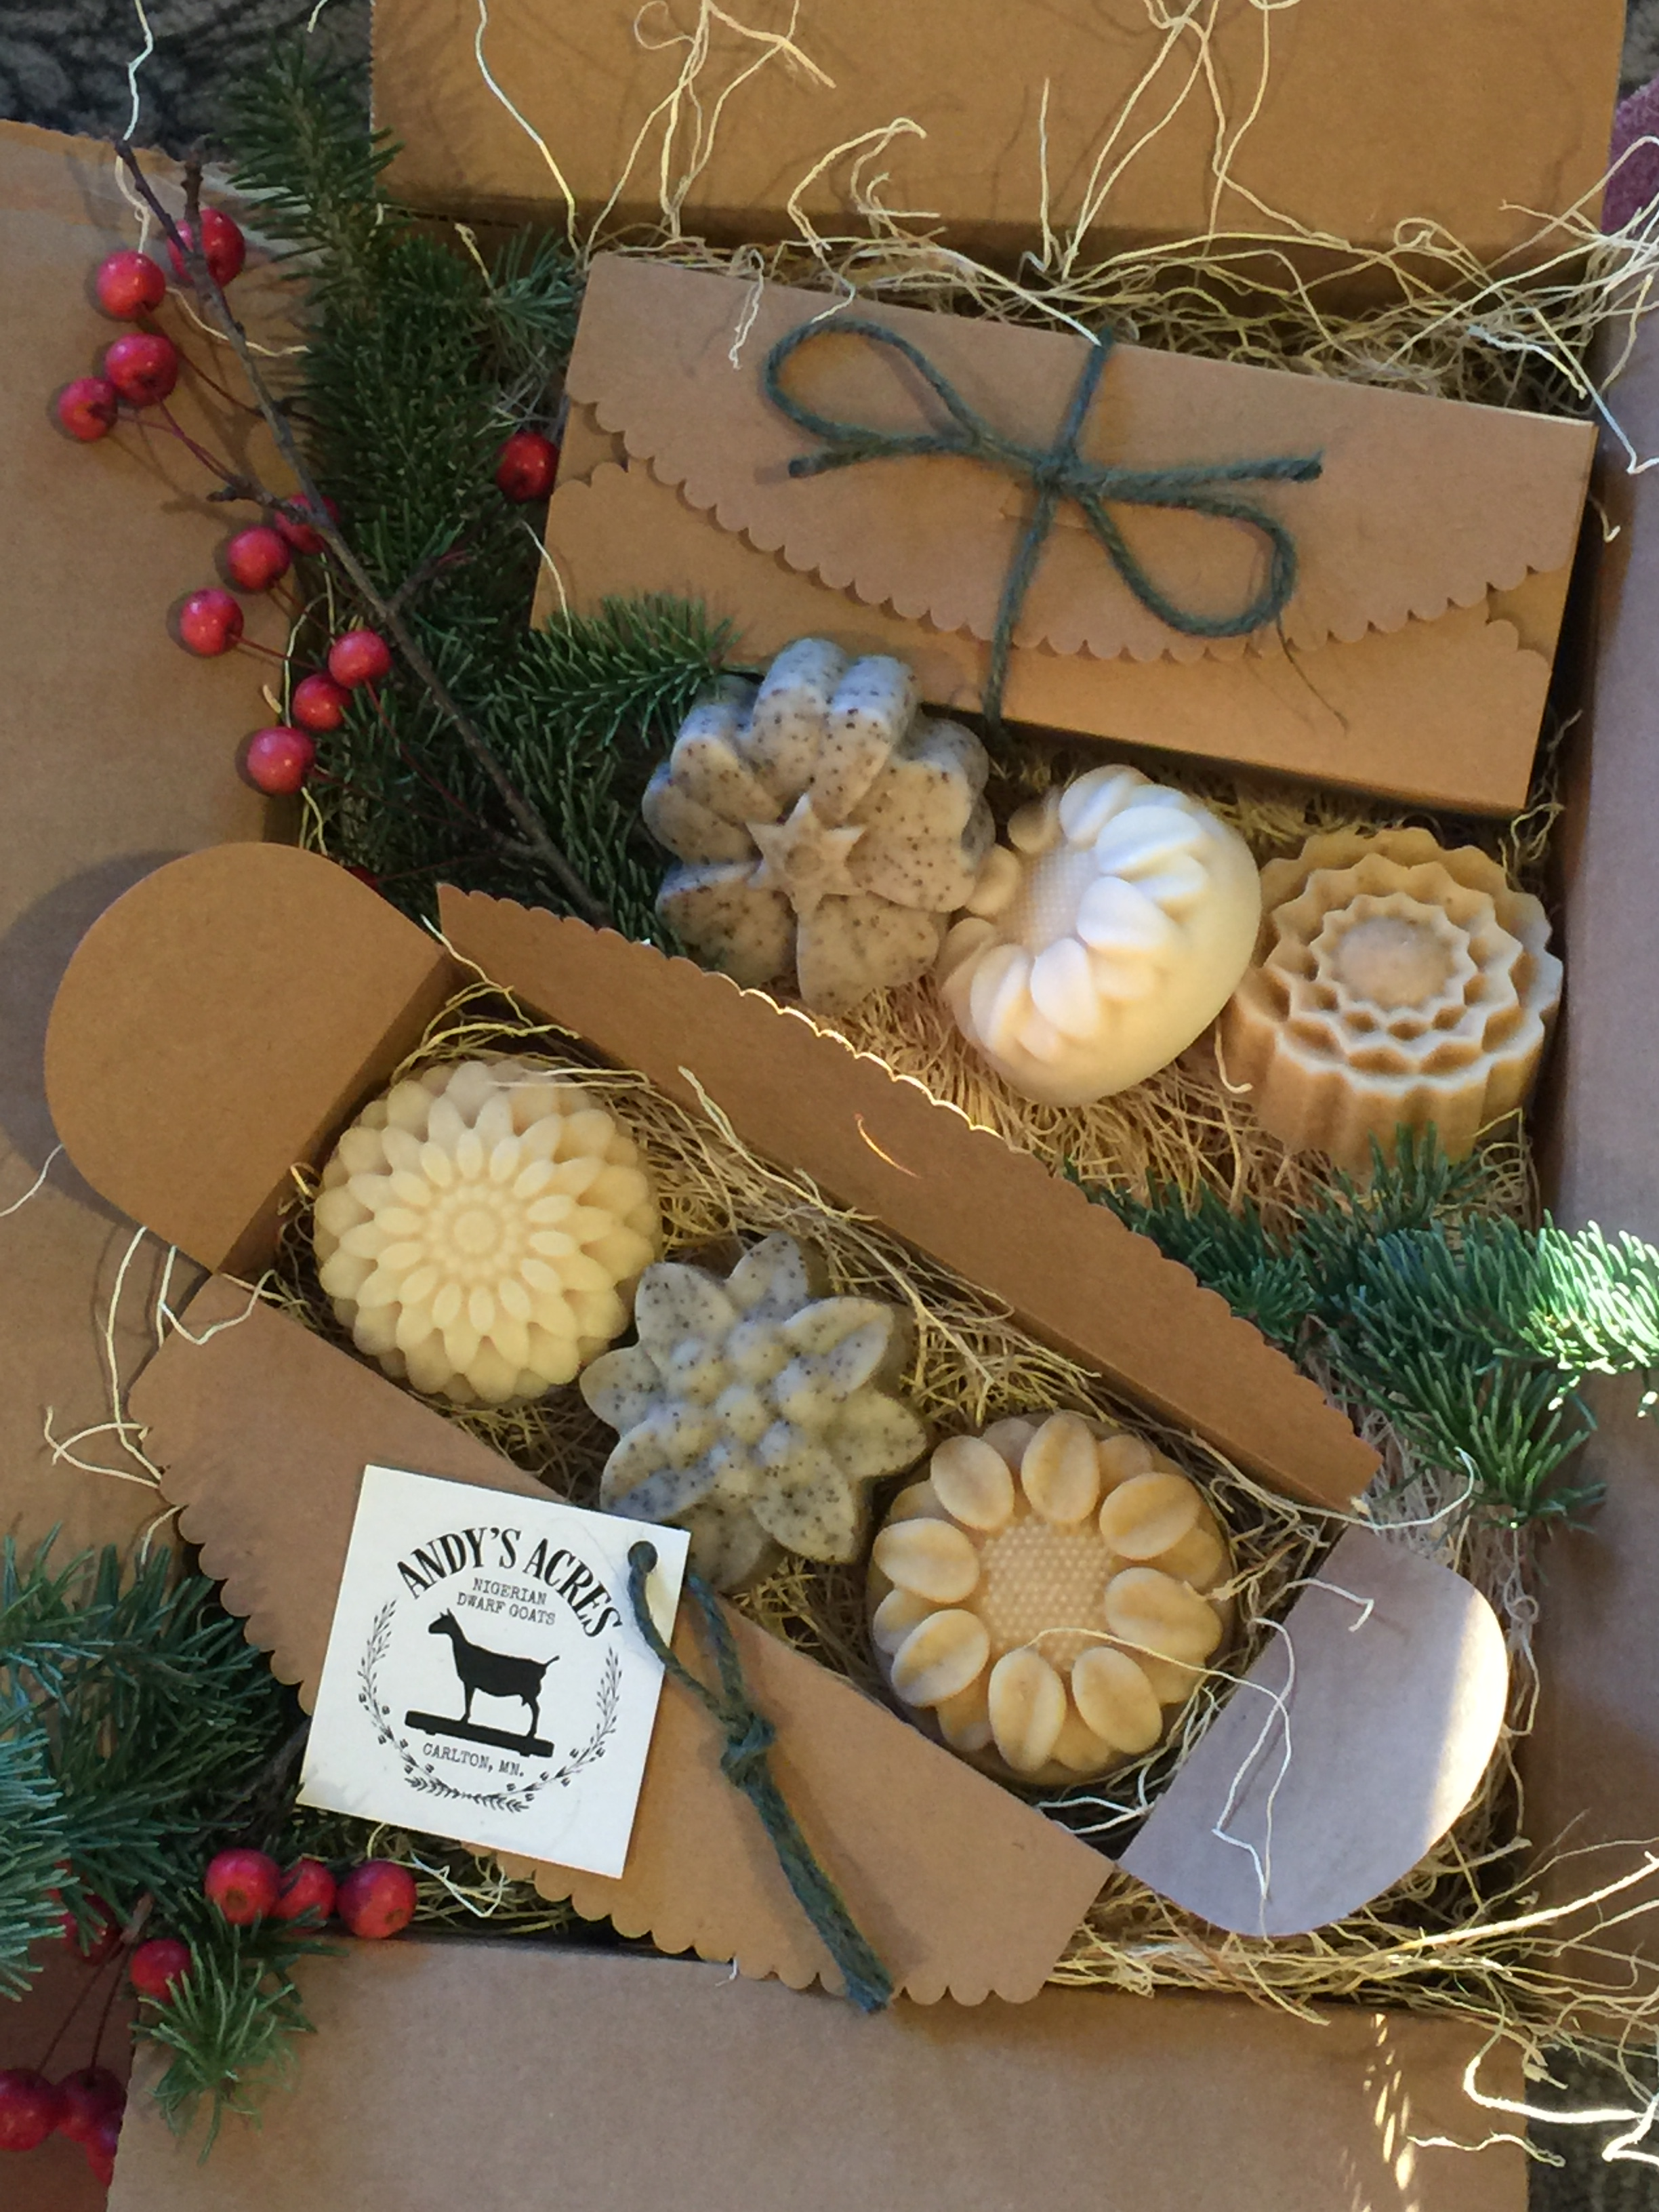 Andy's Acres Goat Milk Soaps